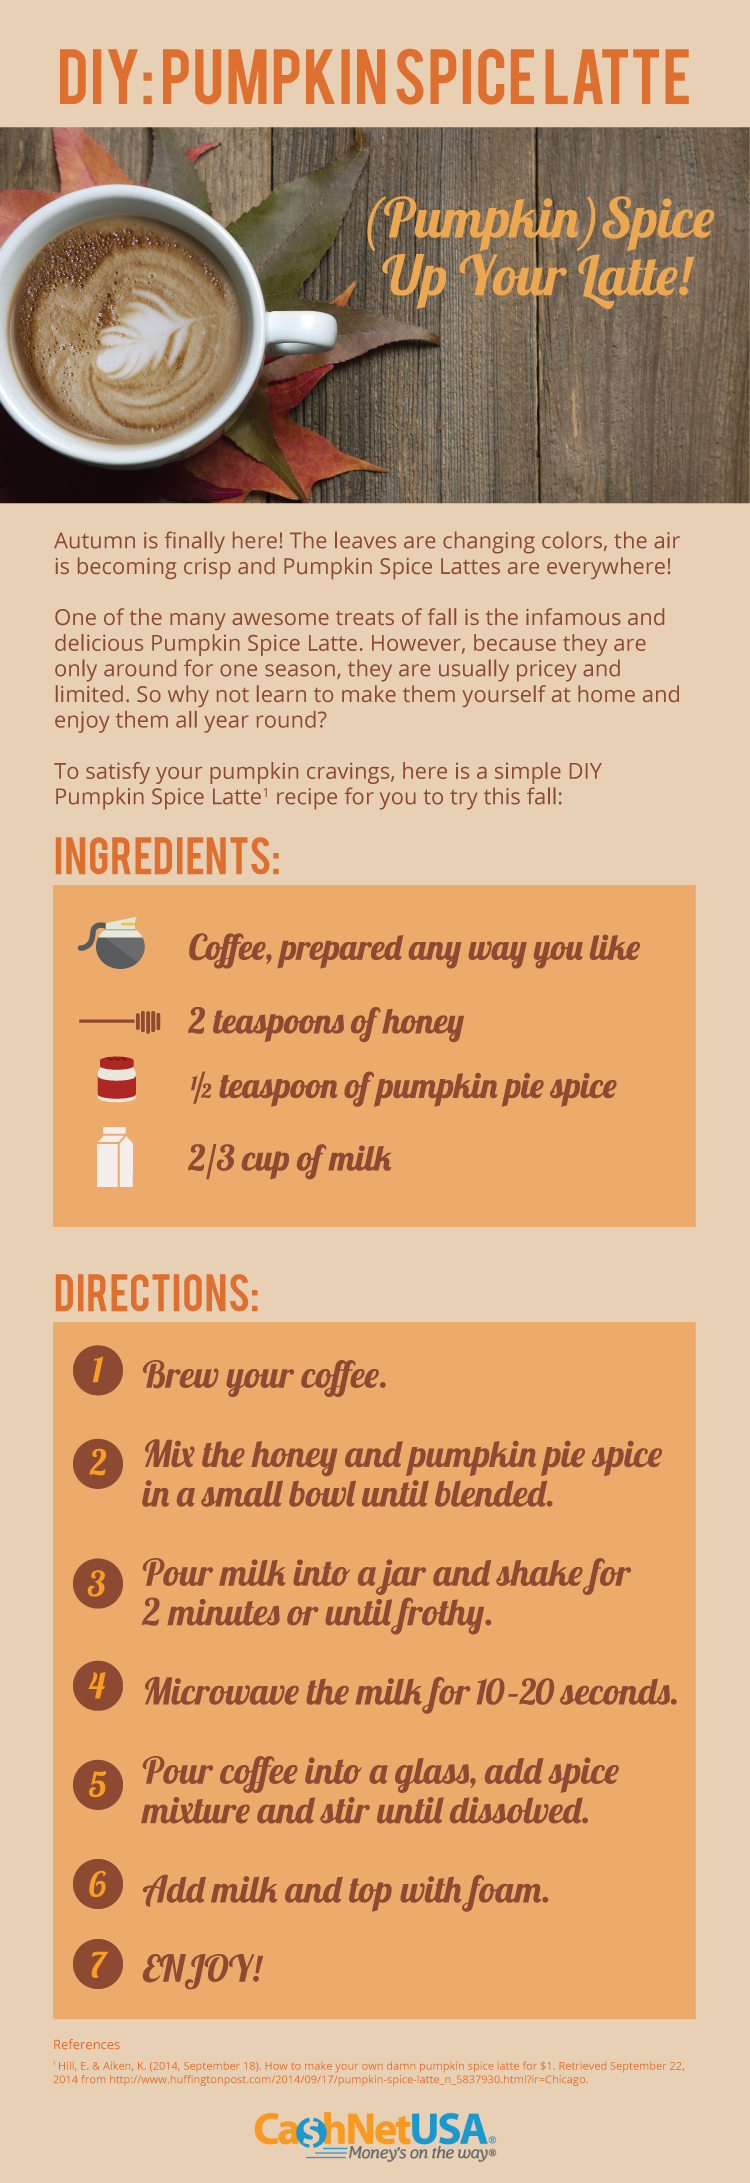 DIY: Pumpkin Spice Latte